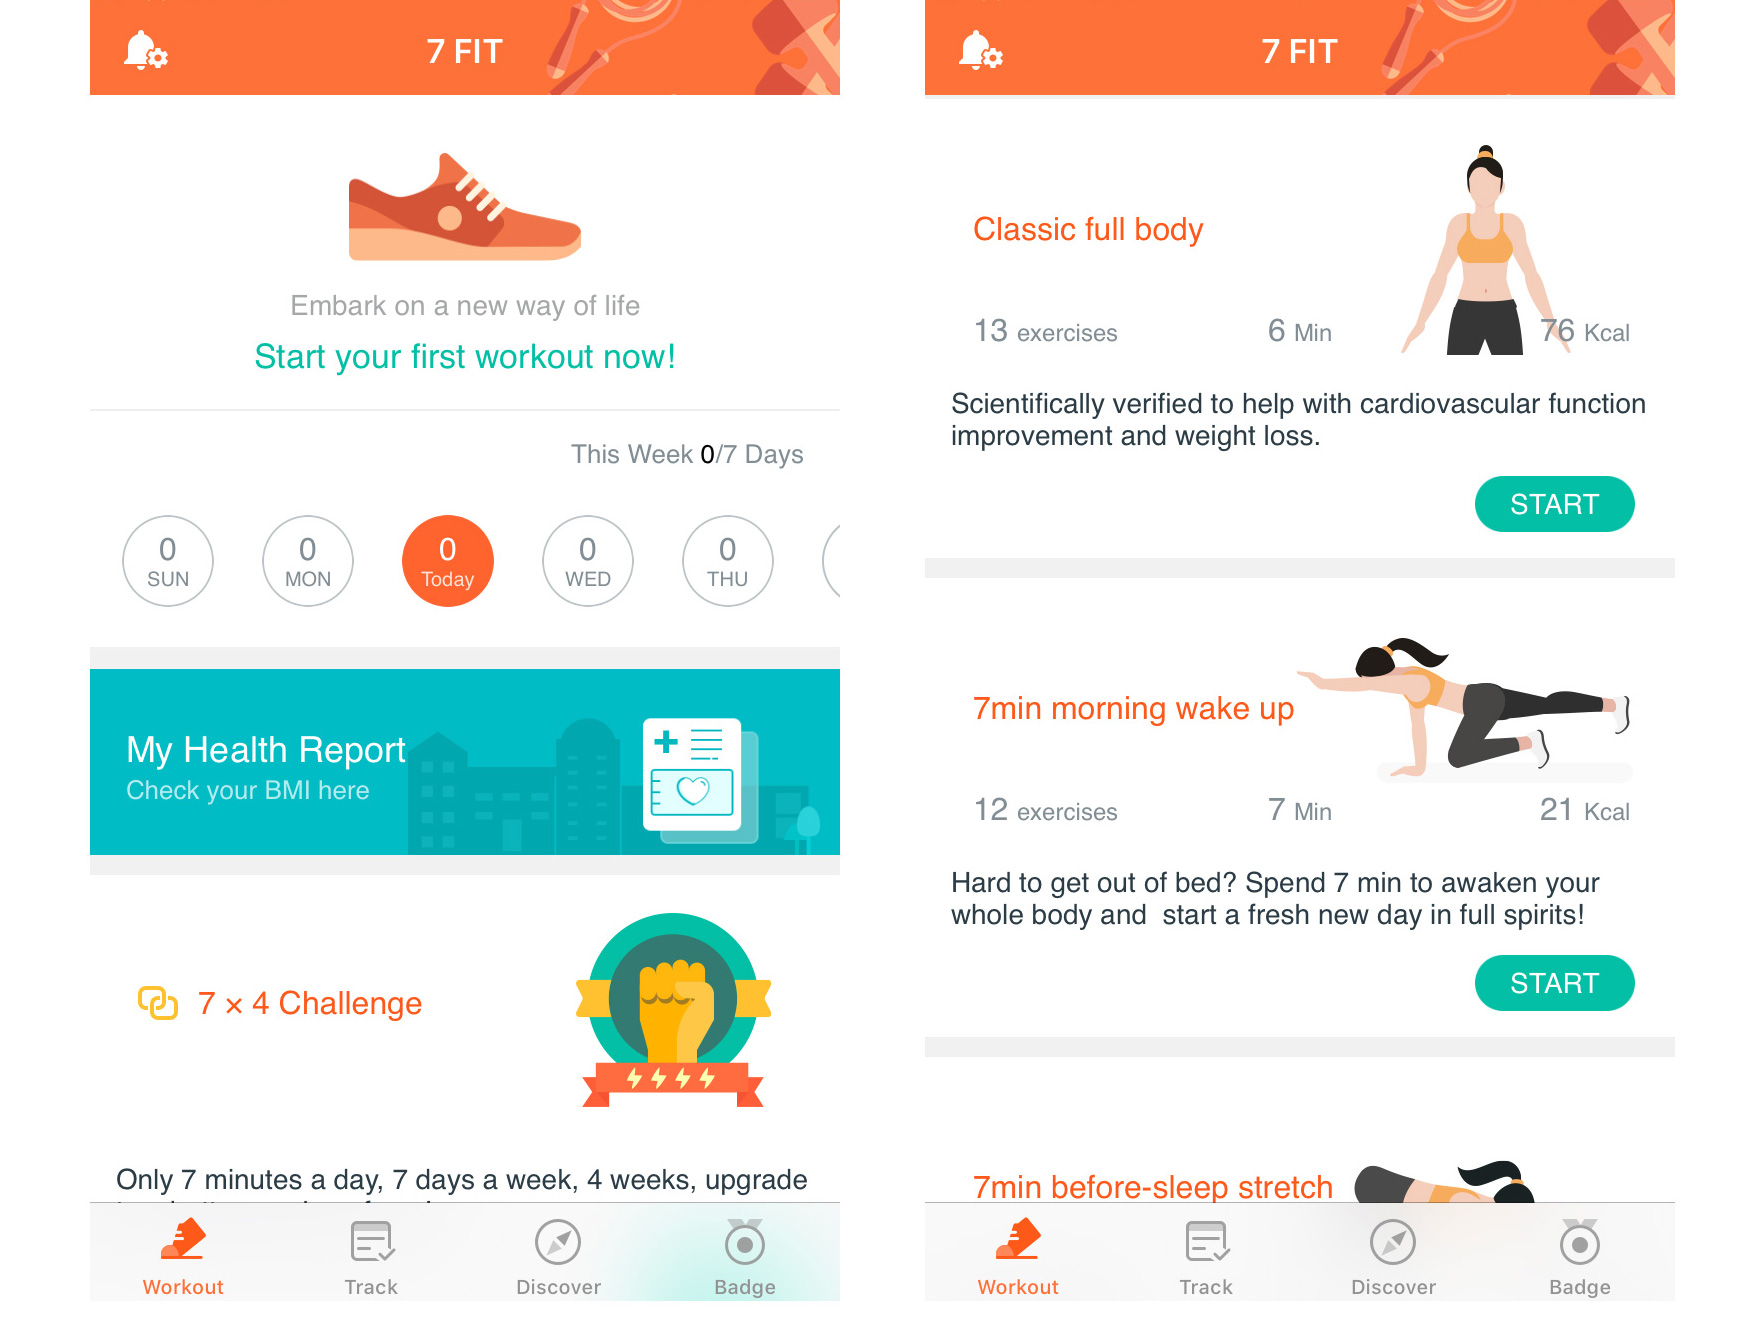 11.) 7 FIT - 7 Minute Workout - Let's say that you don't like any of the previous apps because you still feel like you lack free time. What if we say you only need 10 minutes? Actually, you won't need even 10 minutes, because this app delivers you 7-minute long workouts which range from total-body routines to body-part specific. Training 7 minutes a day will not make you the next Bruce Lee, but it will get you moving and in shape.